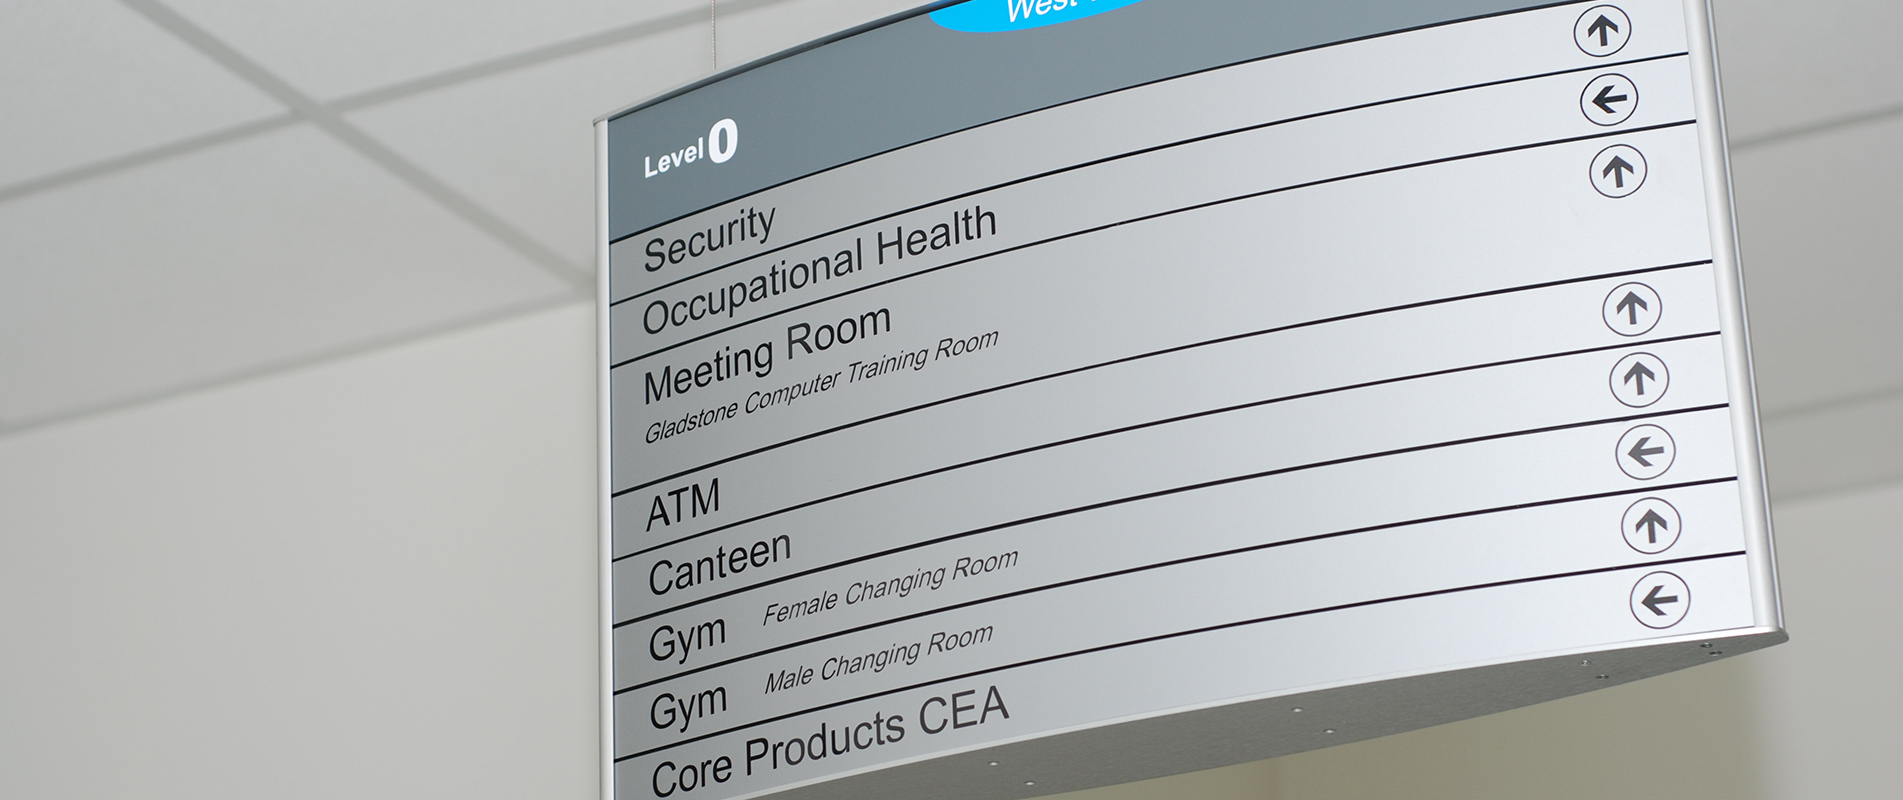 wayfinding-banner-images-1